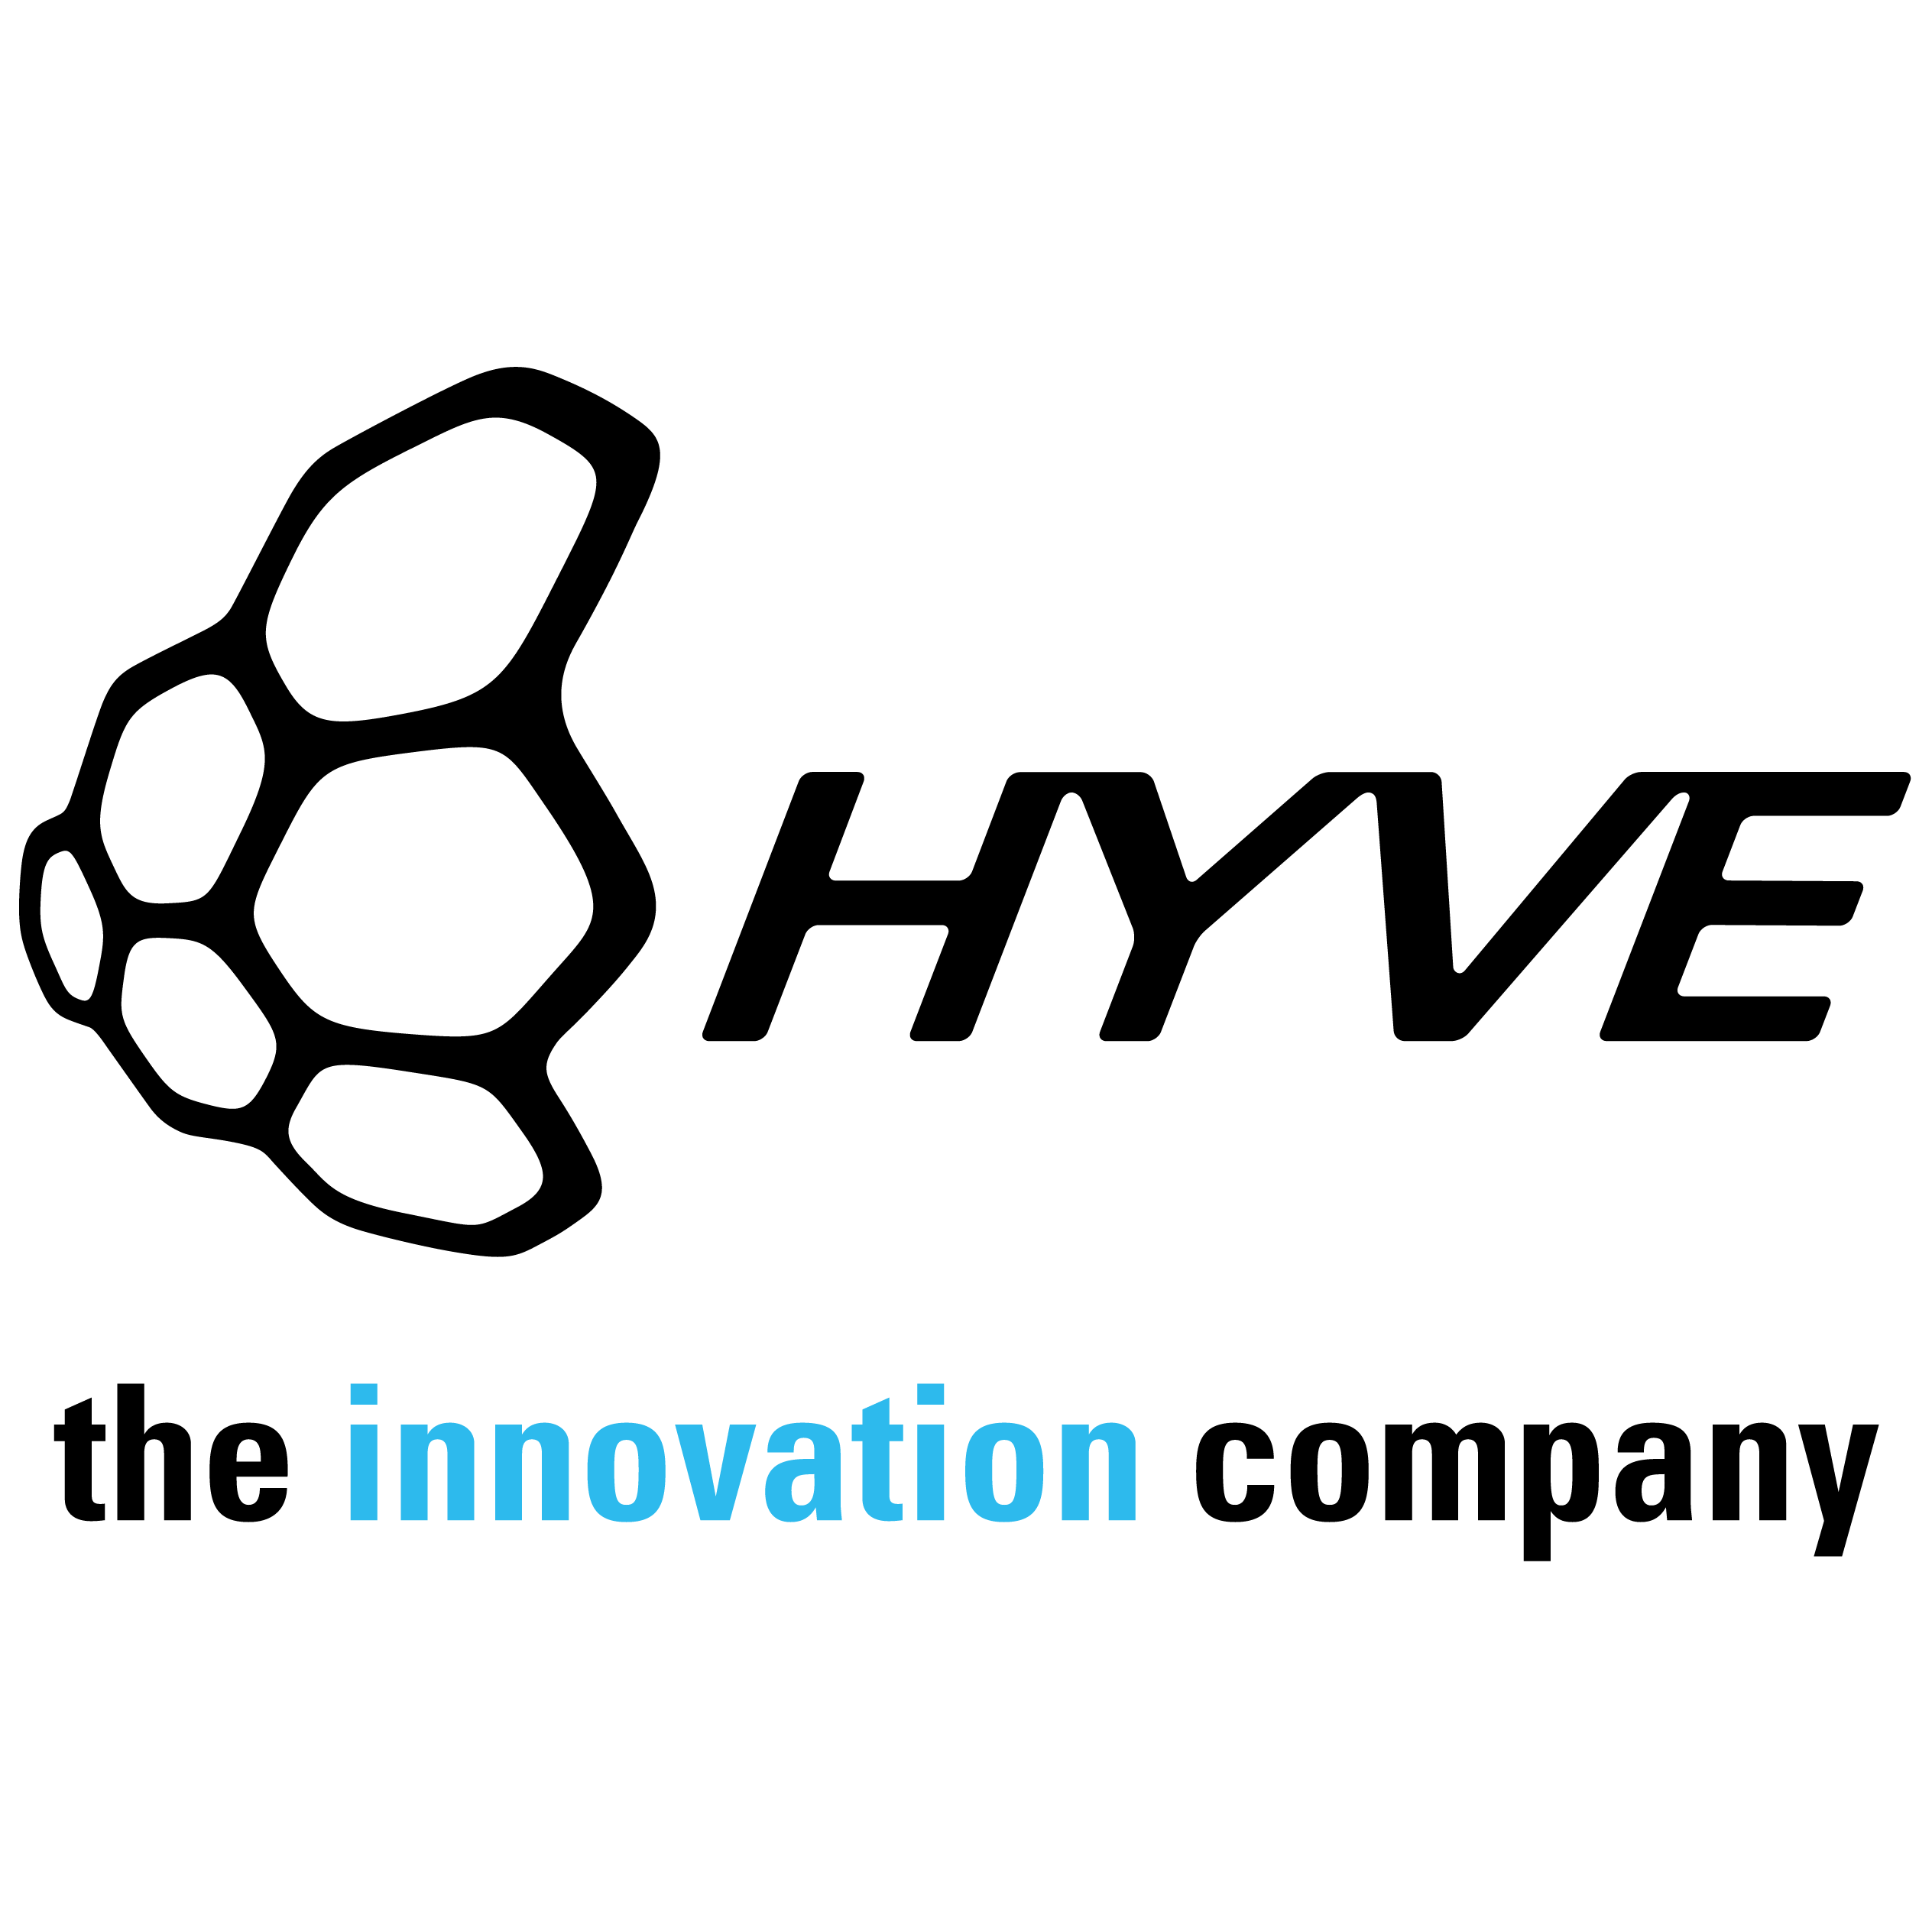 HYVE Innovation Research GmbH